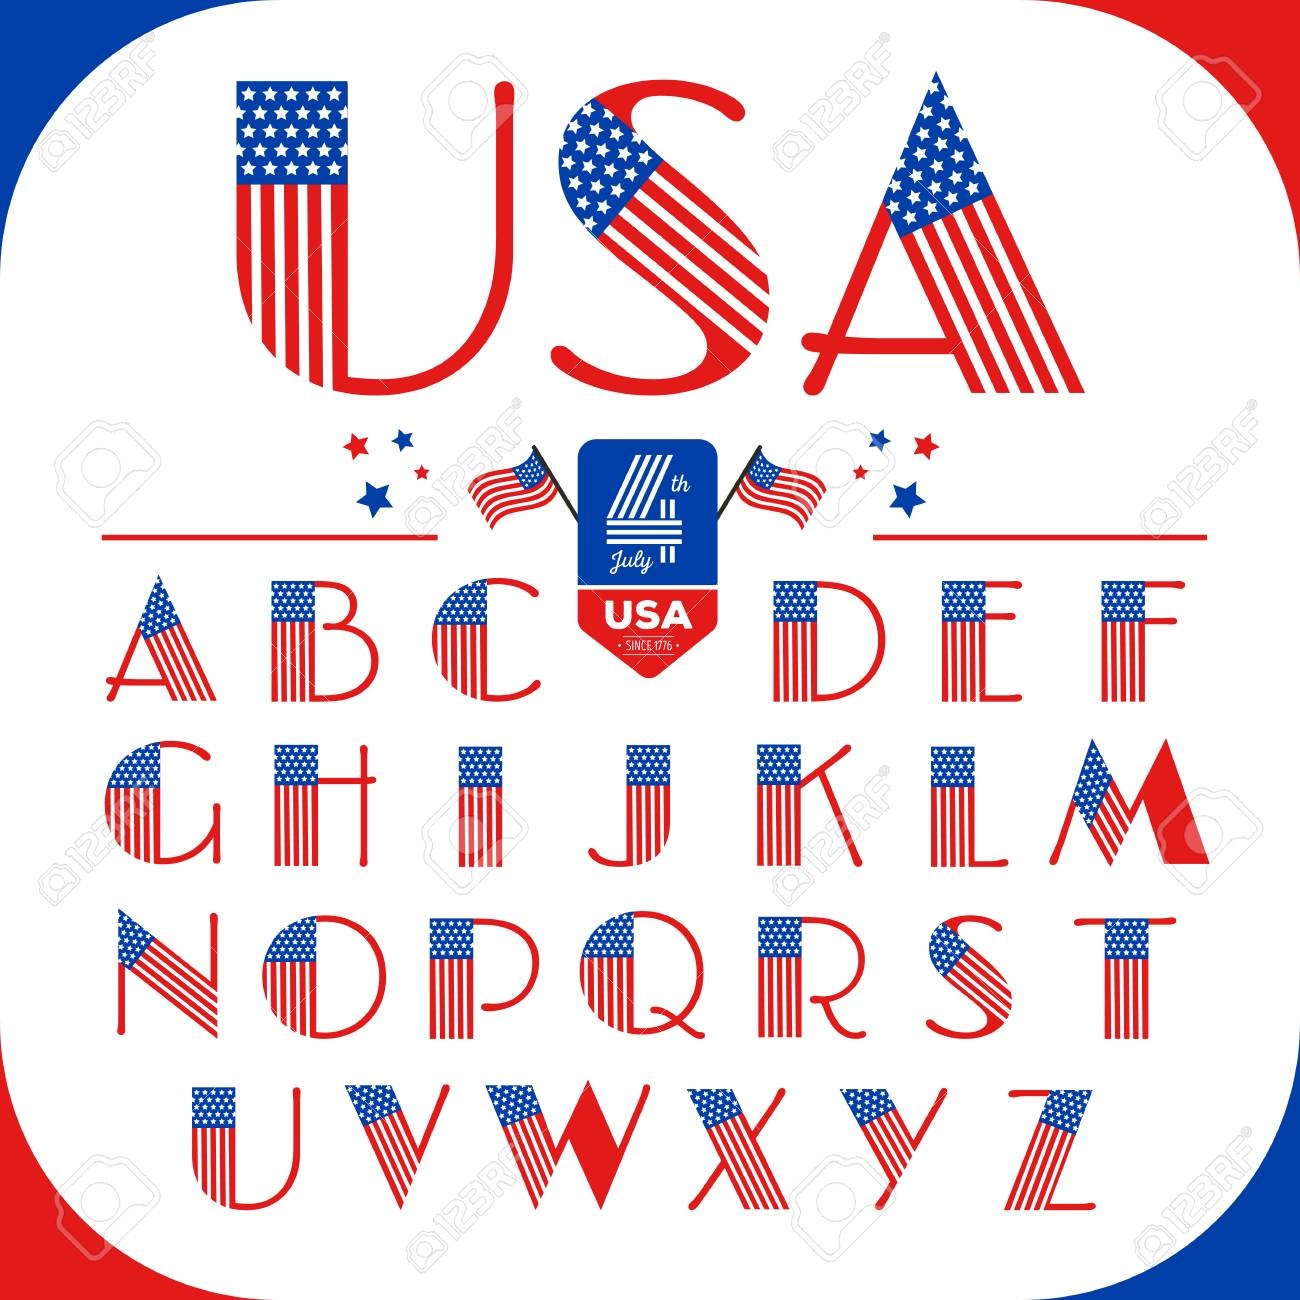 84ba04aaf3f Alphabet letters set in USA style with American flag. Happy 4th of July.  Independence